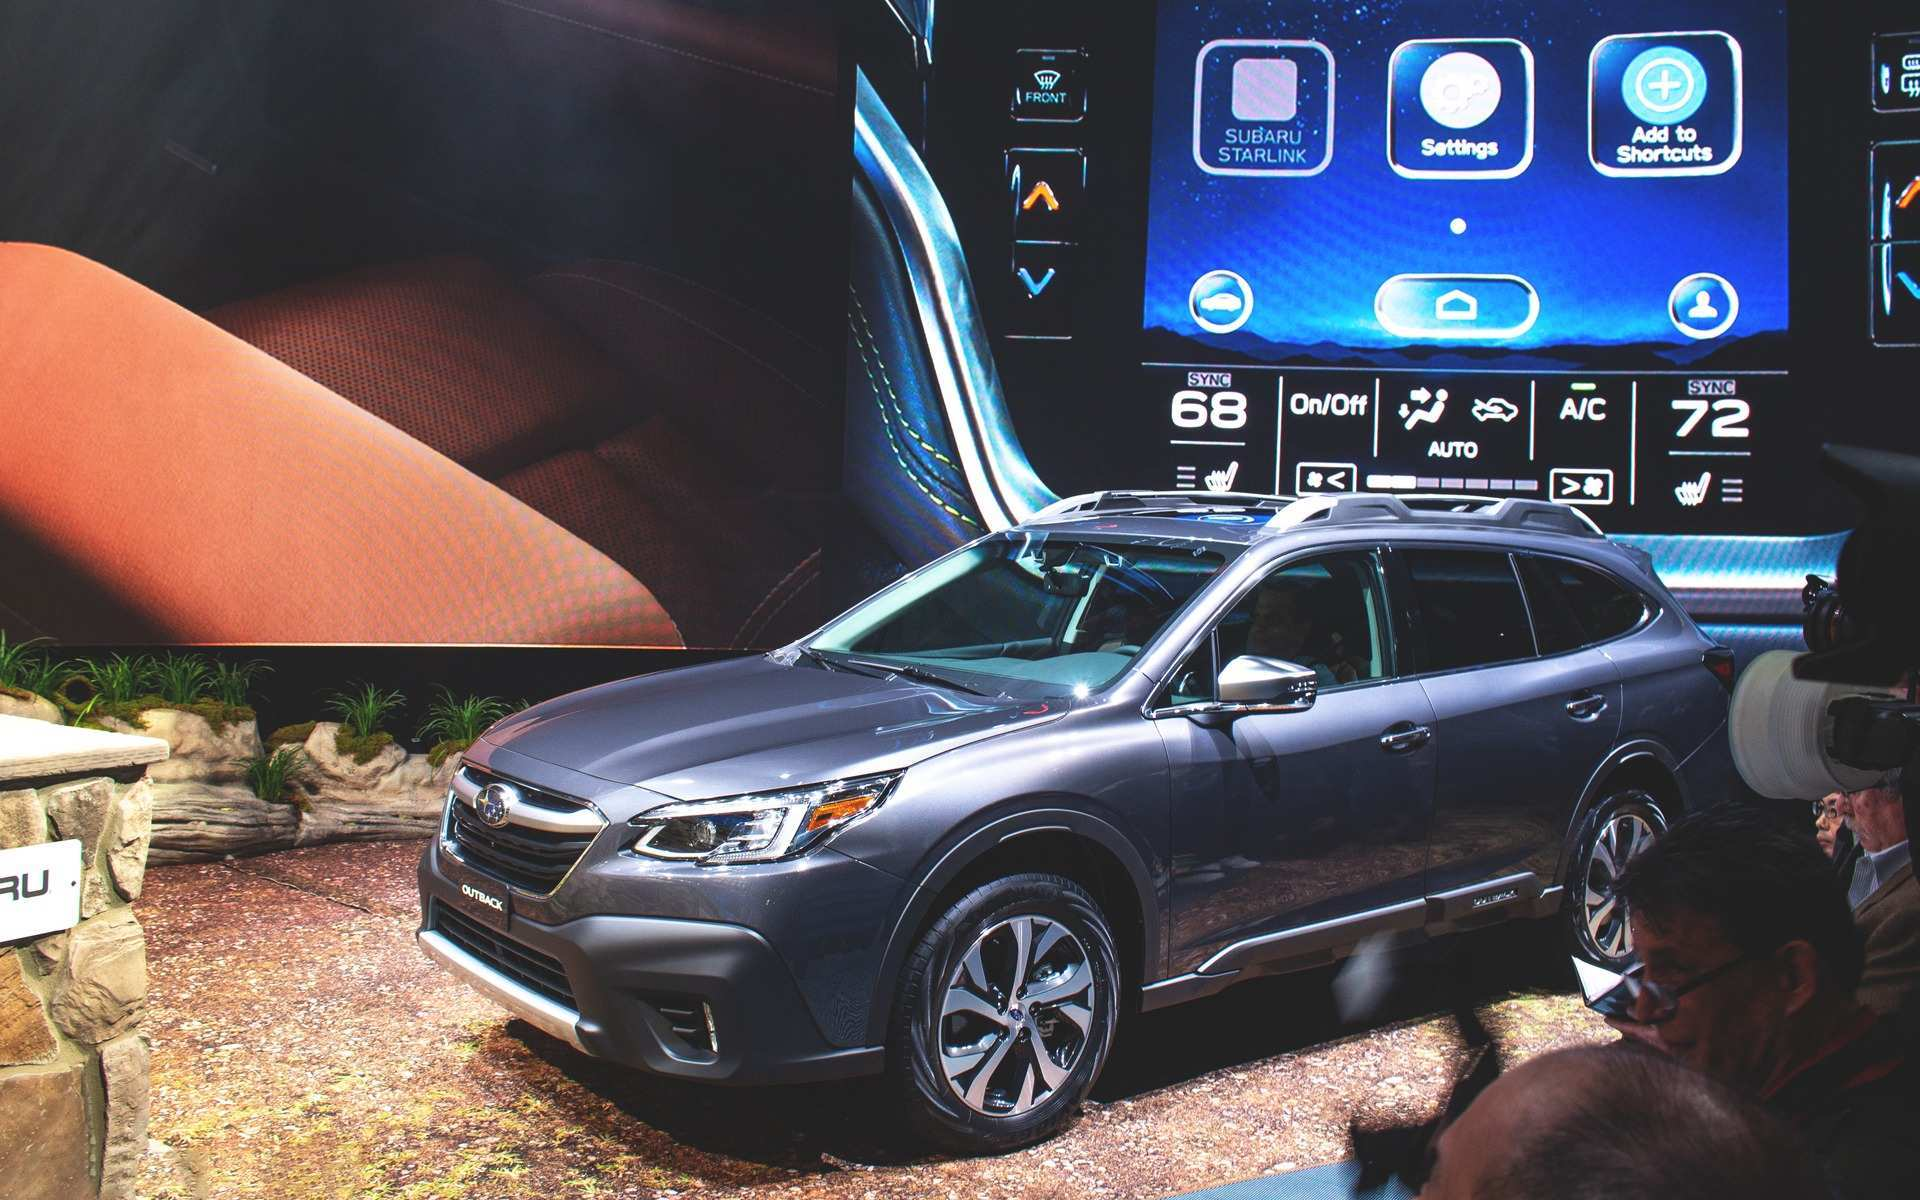 59 All New When Will The 2020 Subaru Outback Be Released History